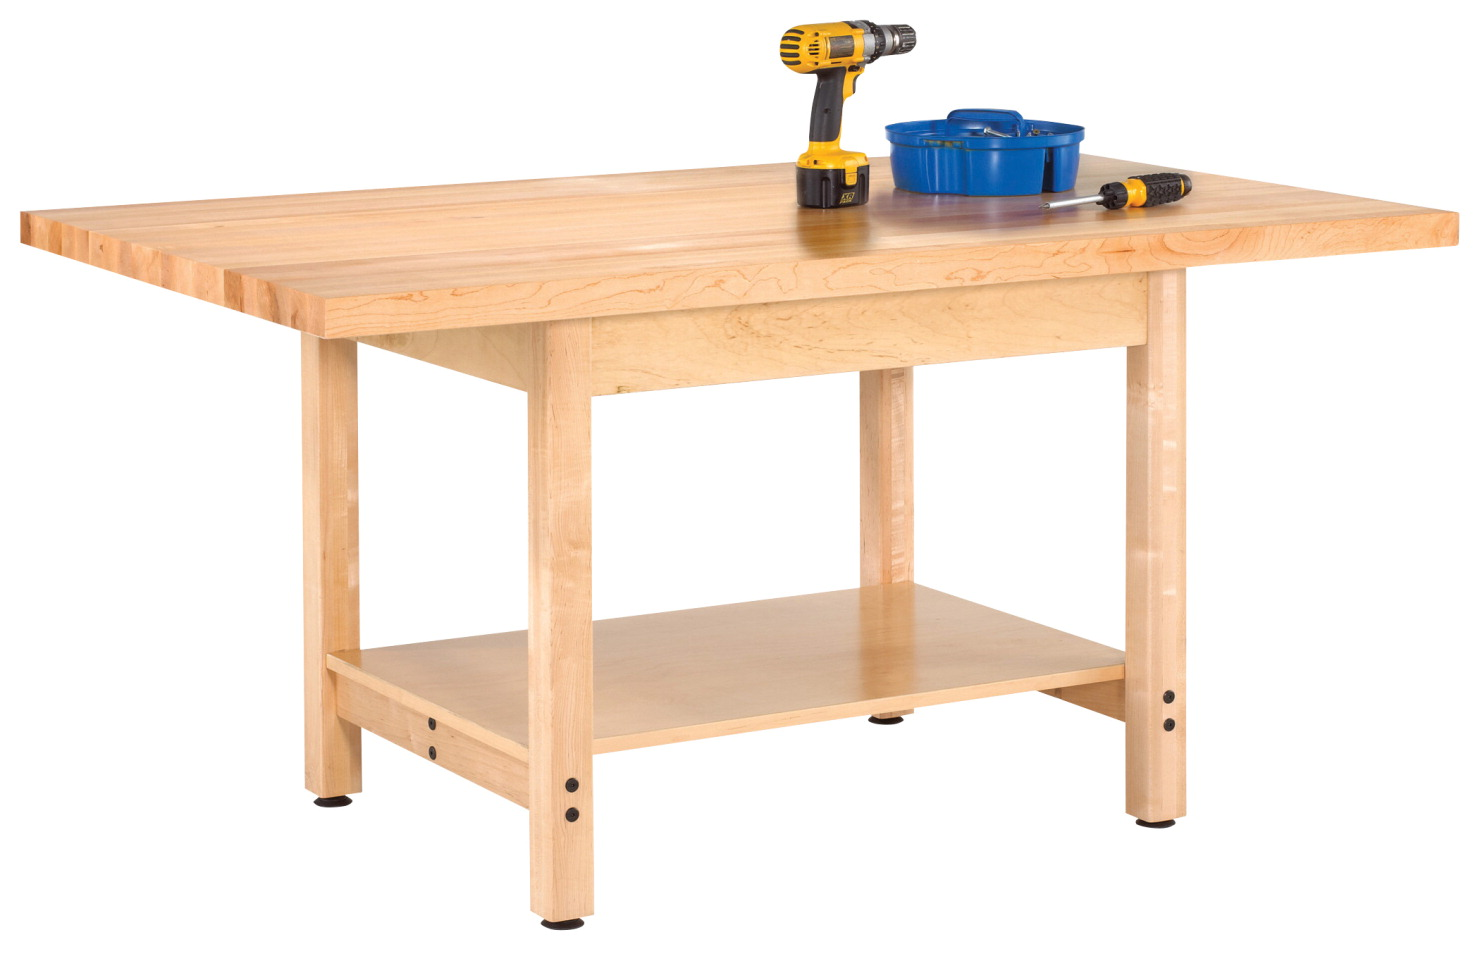 Diversified Woodcrafts Workbench, 72 x 30 x 30-3/4 Inches, Maple Top